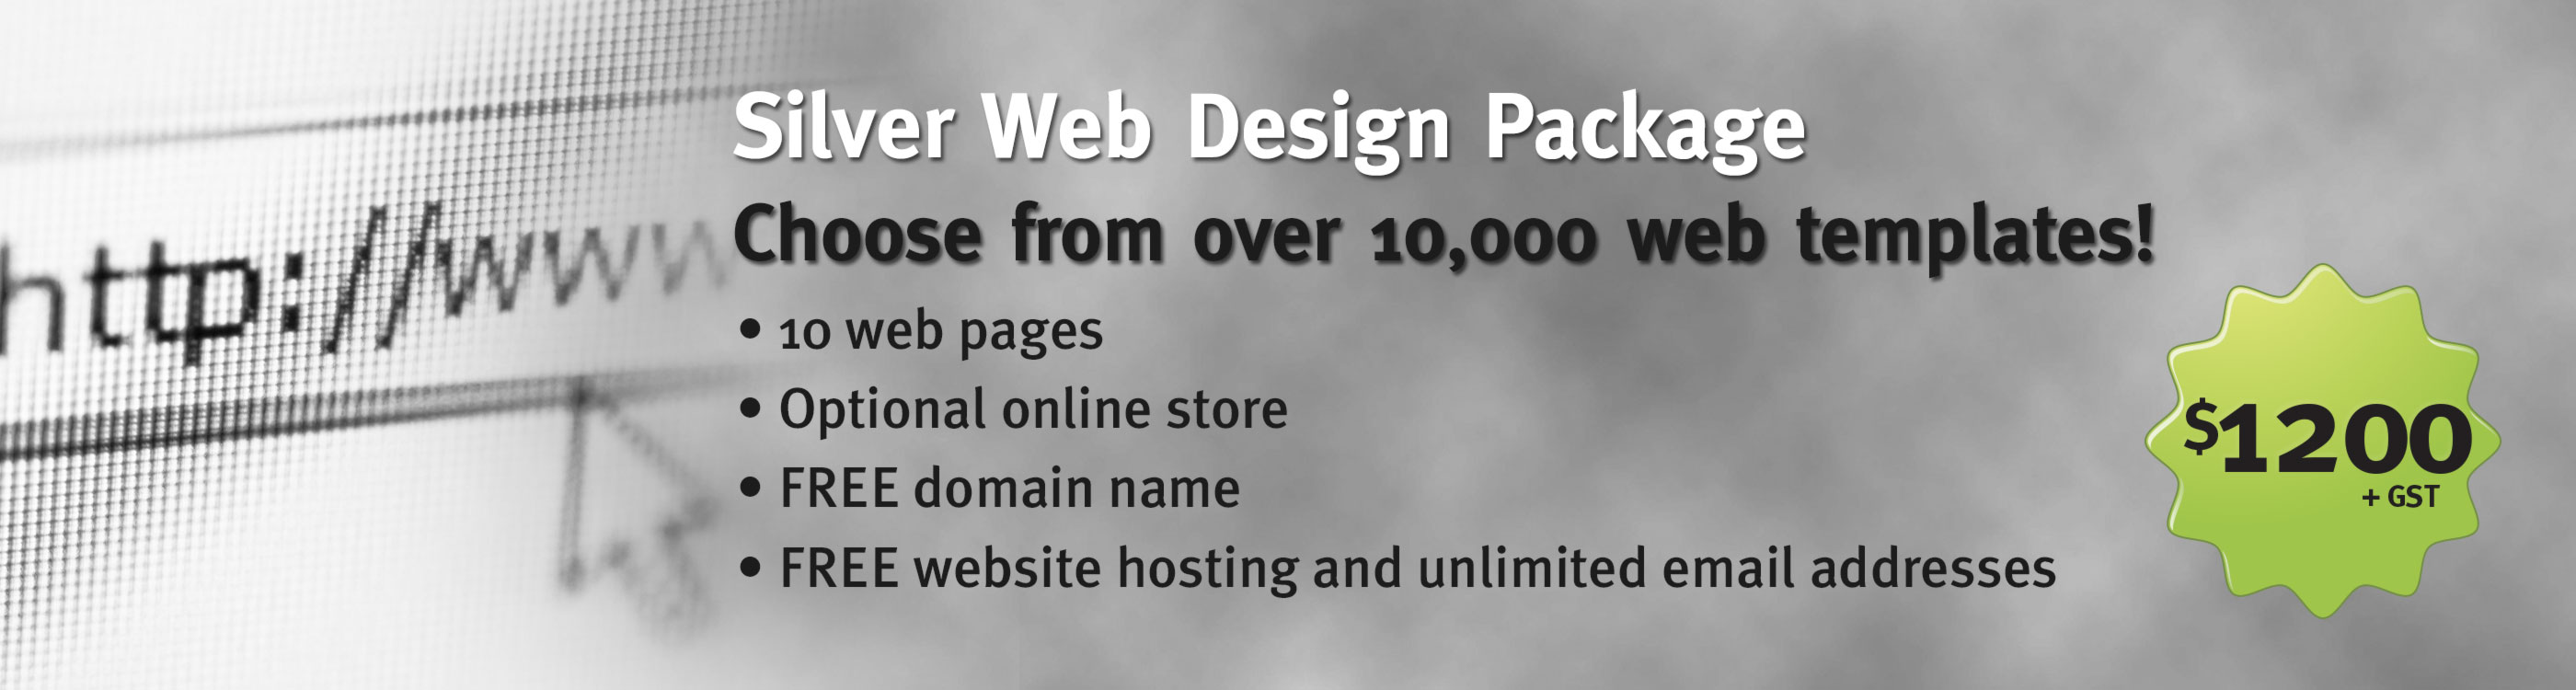 Do it yourself diy website package lime virtual studio diy website package bronze website package silver website package solutioingenieria